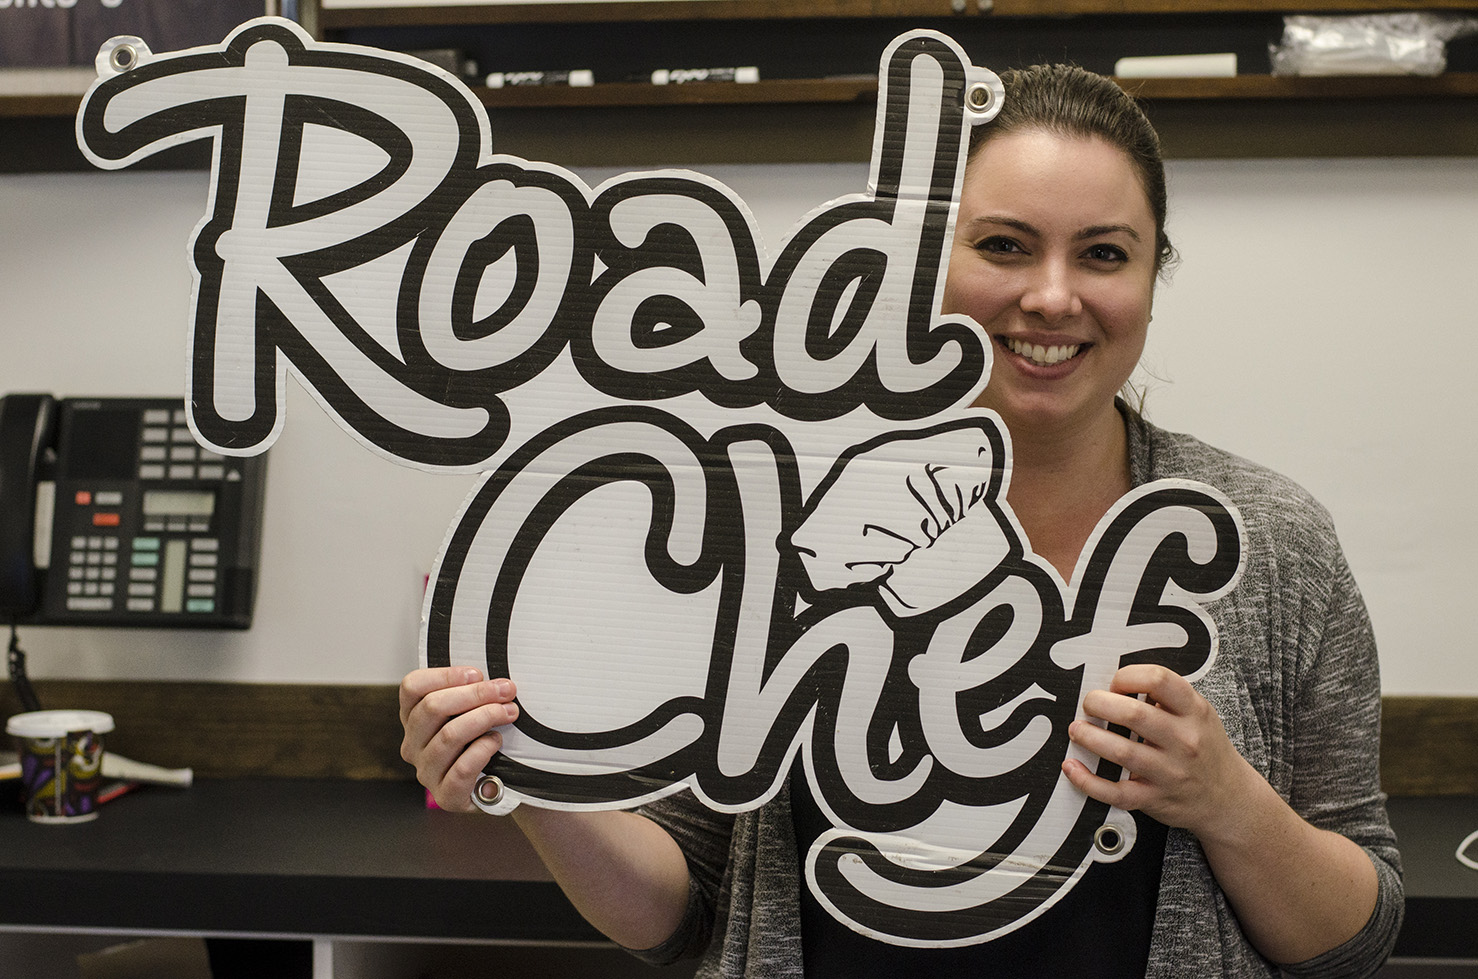 Road Chef has opened its doors!